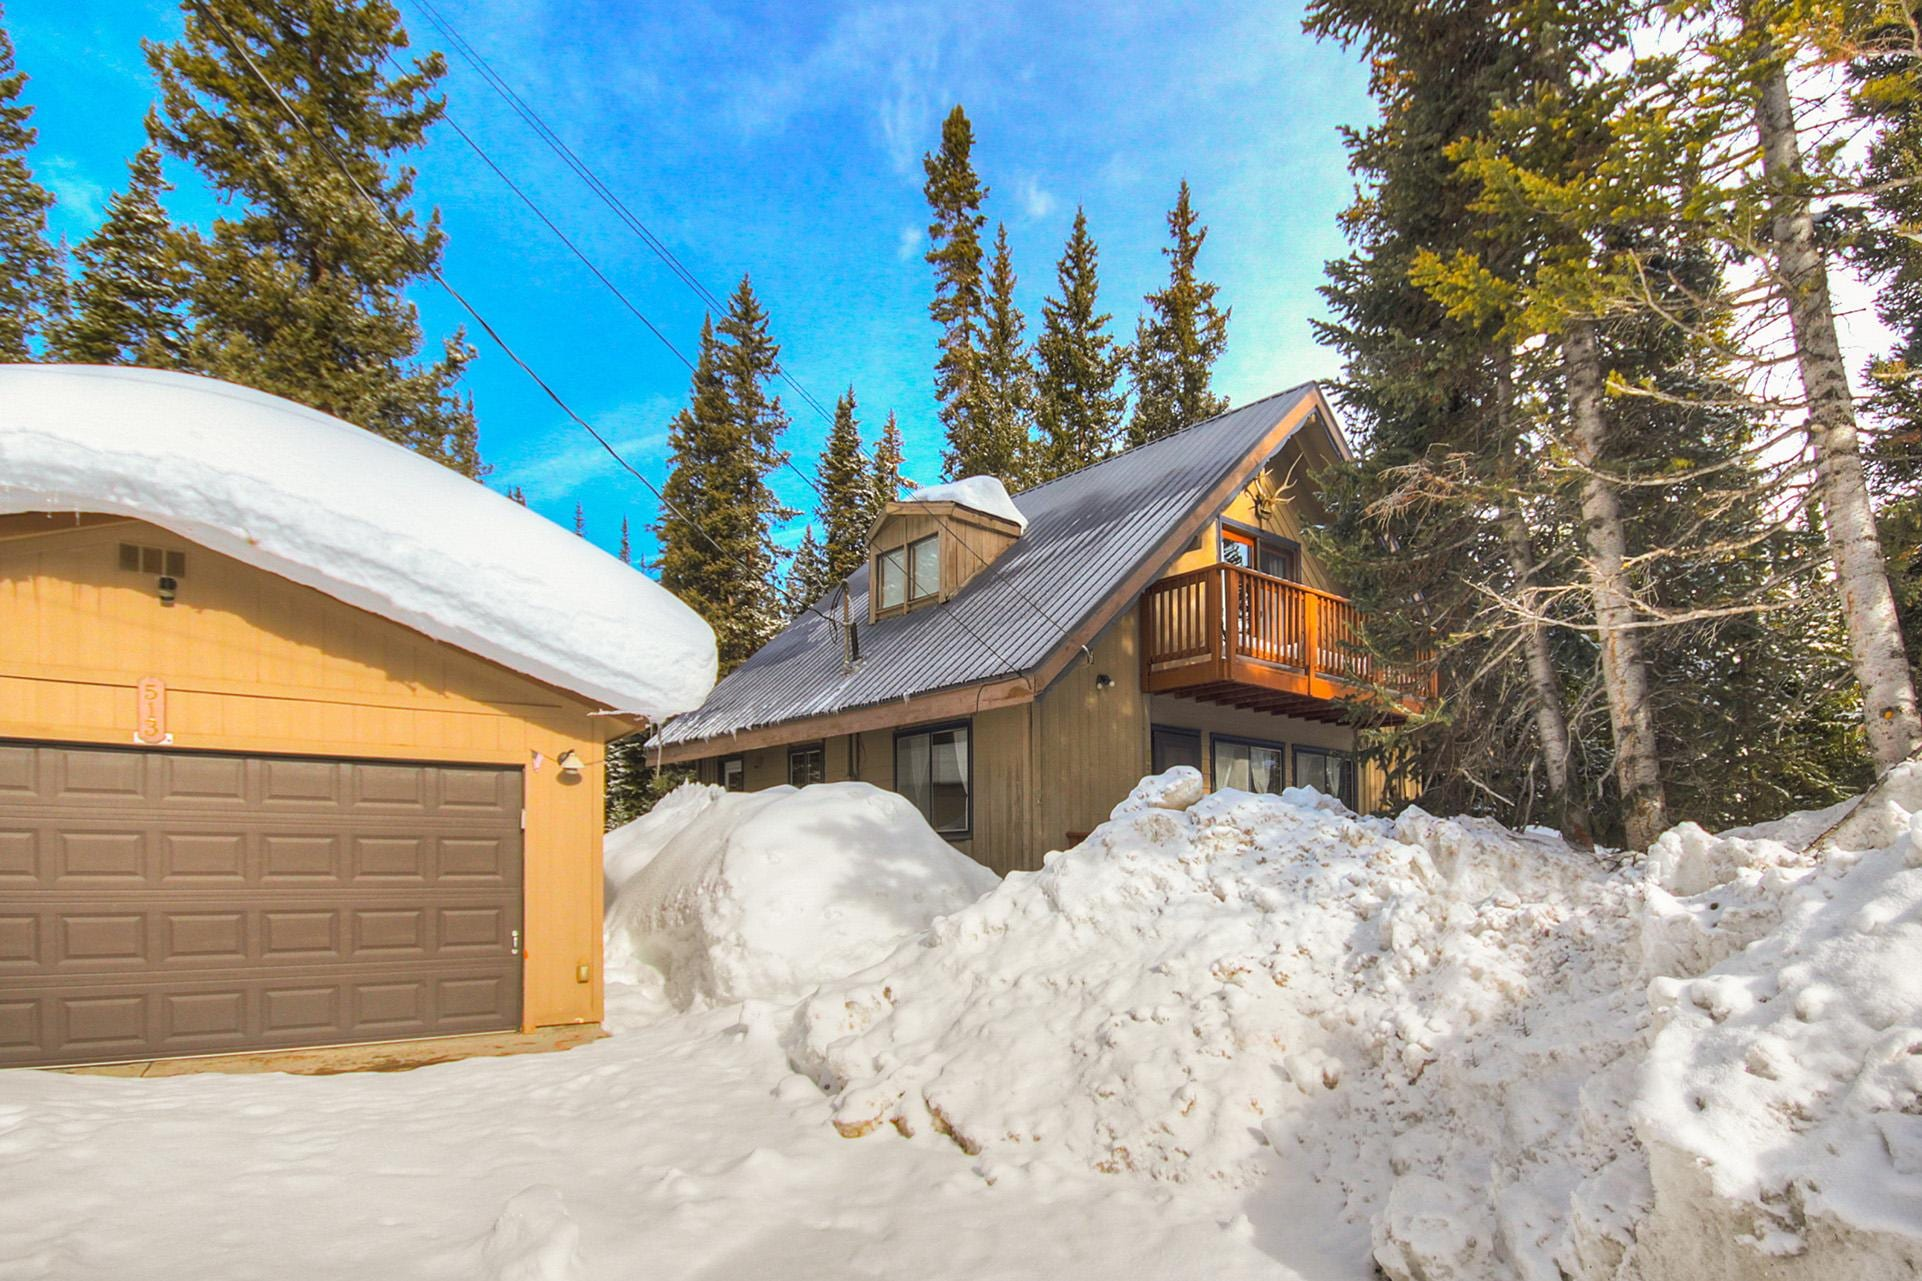 Charming pet-friendly home 10 minutes from Breckenridge